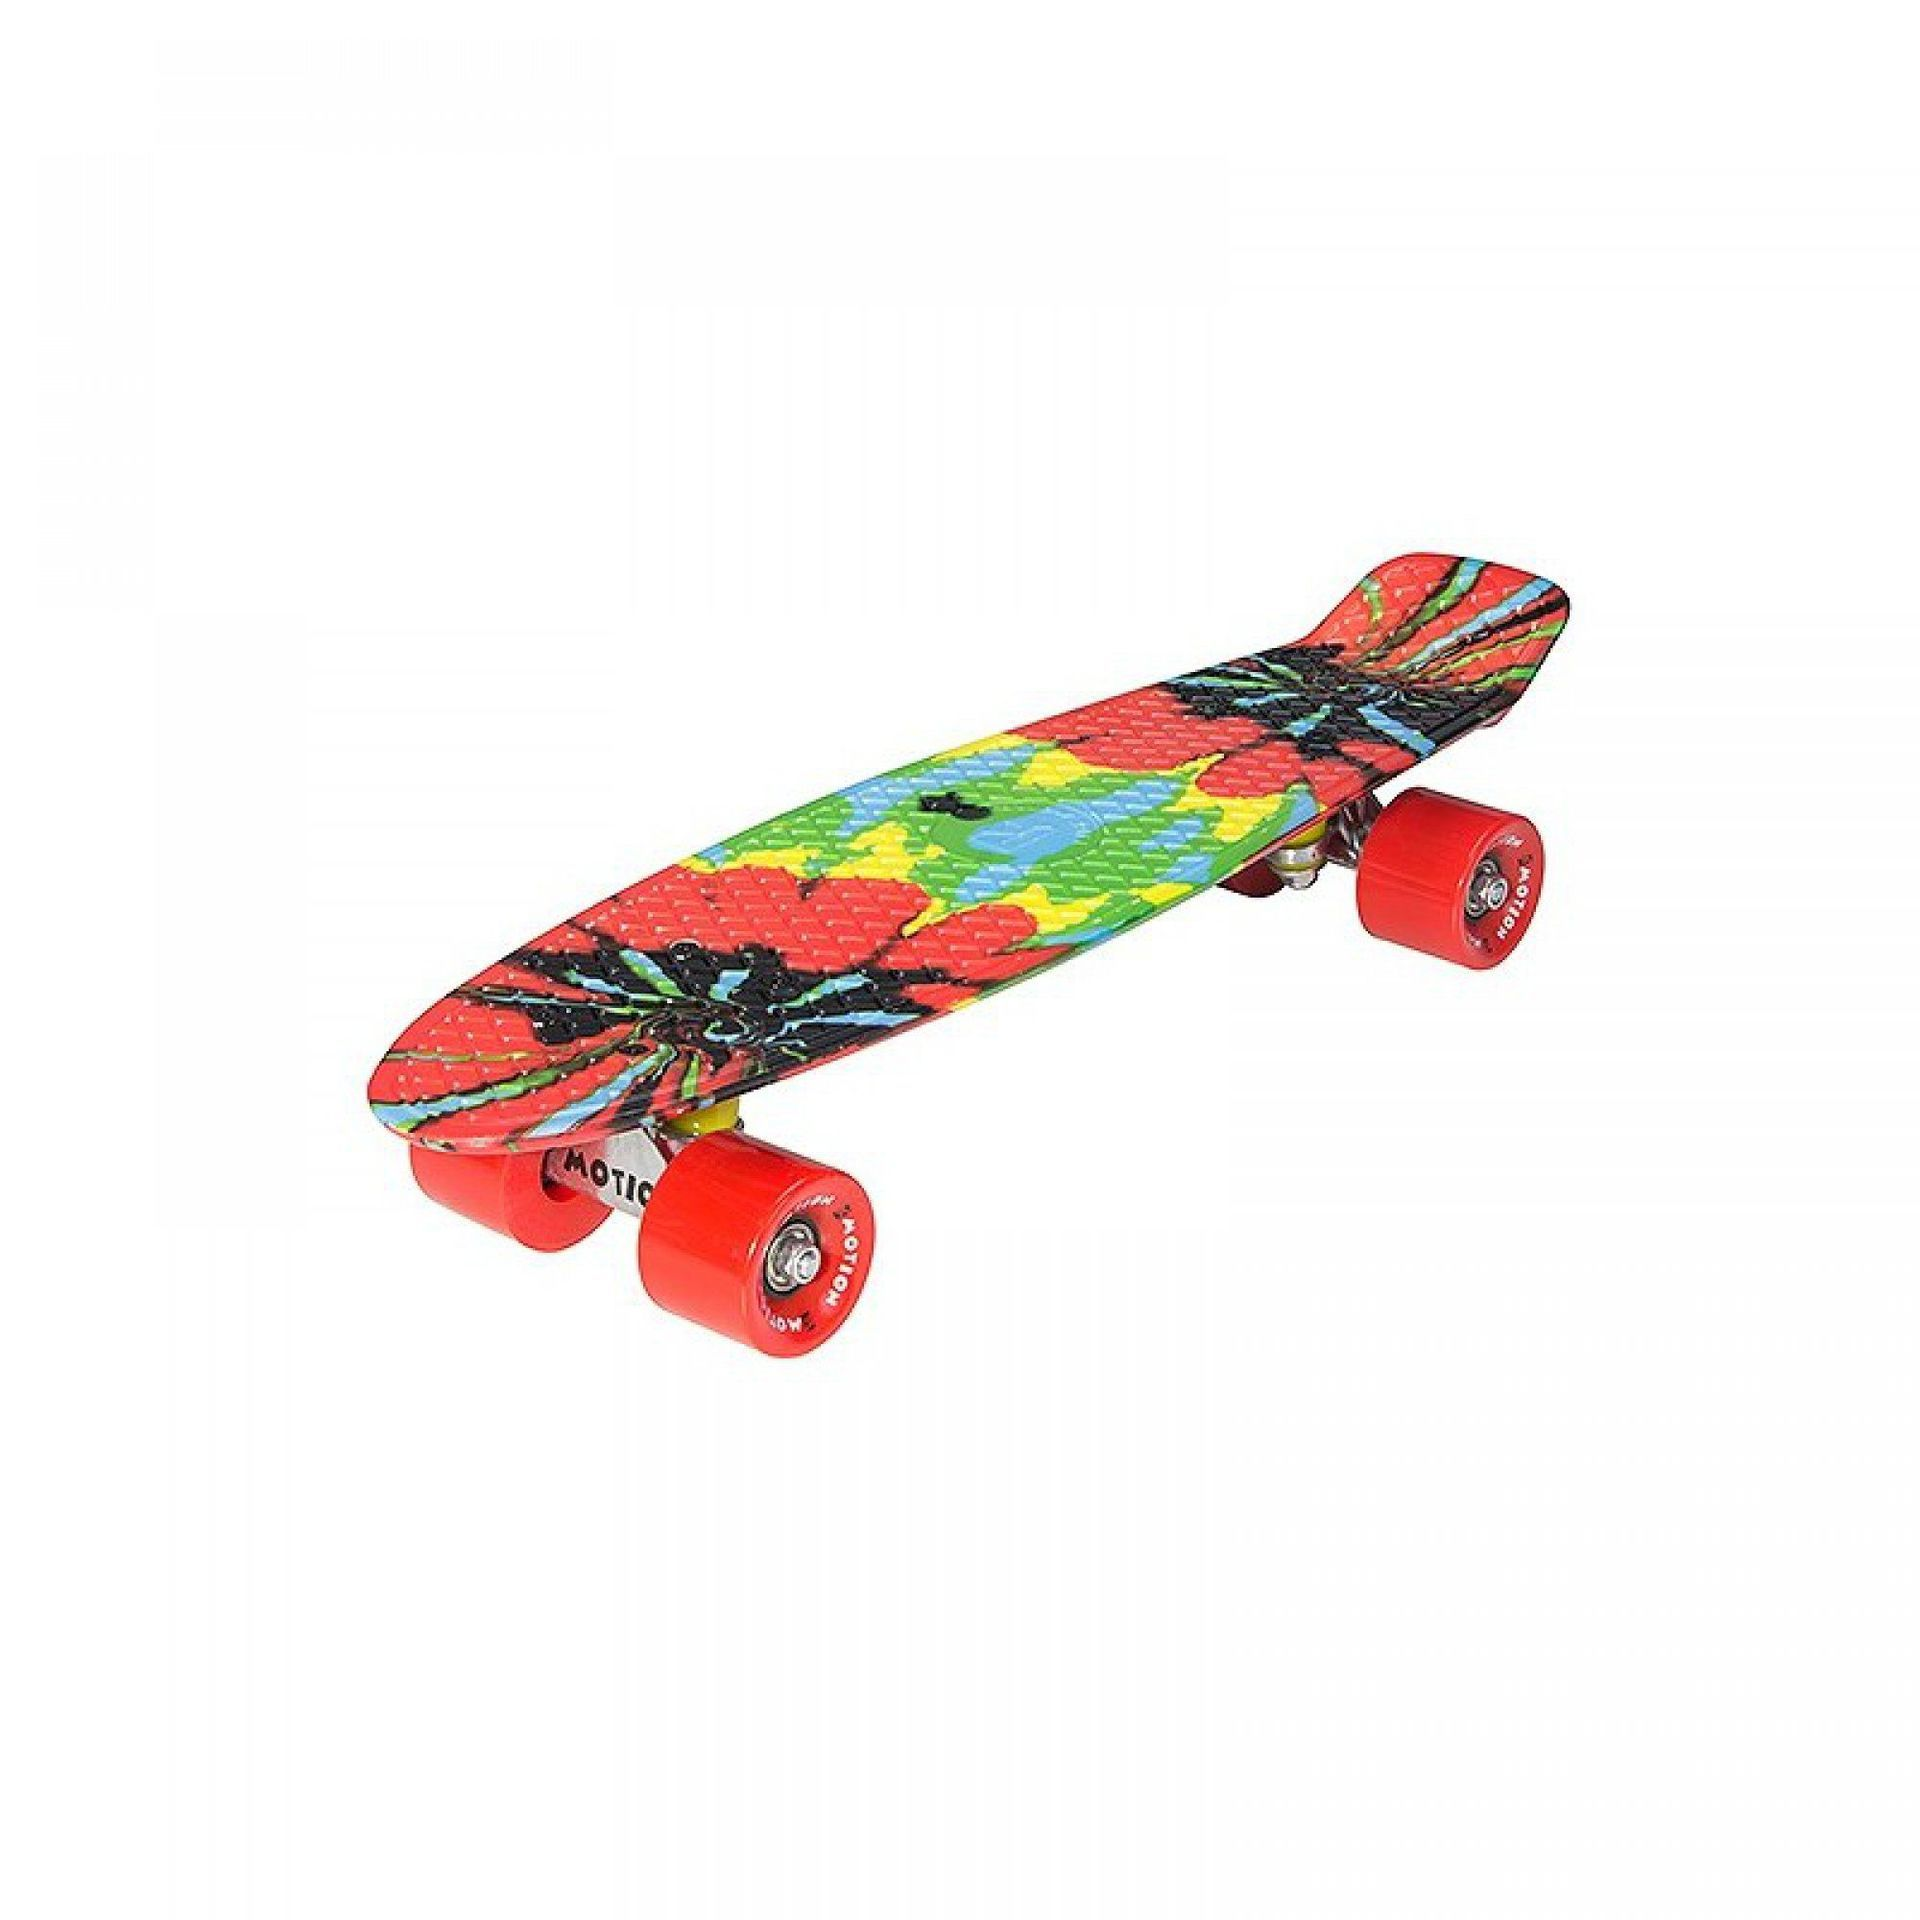 FISHBOARD KIDZ MOTION WATERMELON DECKBOARD 313 1